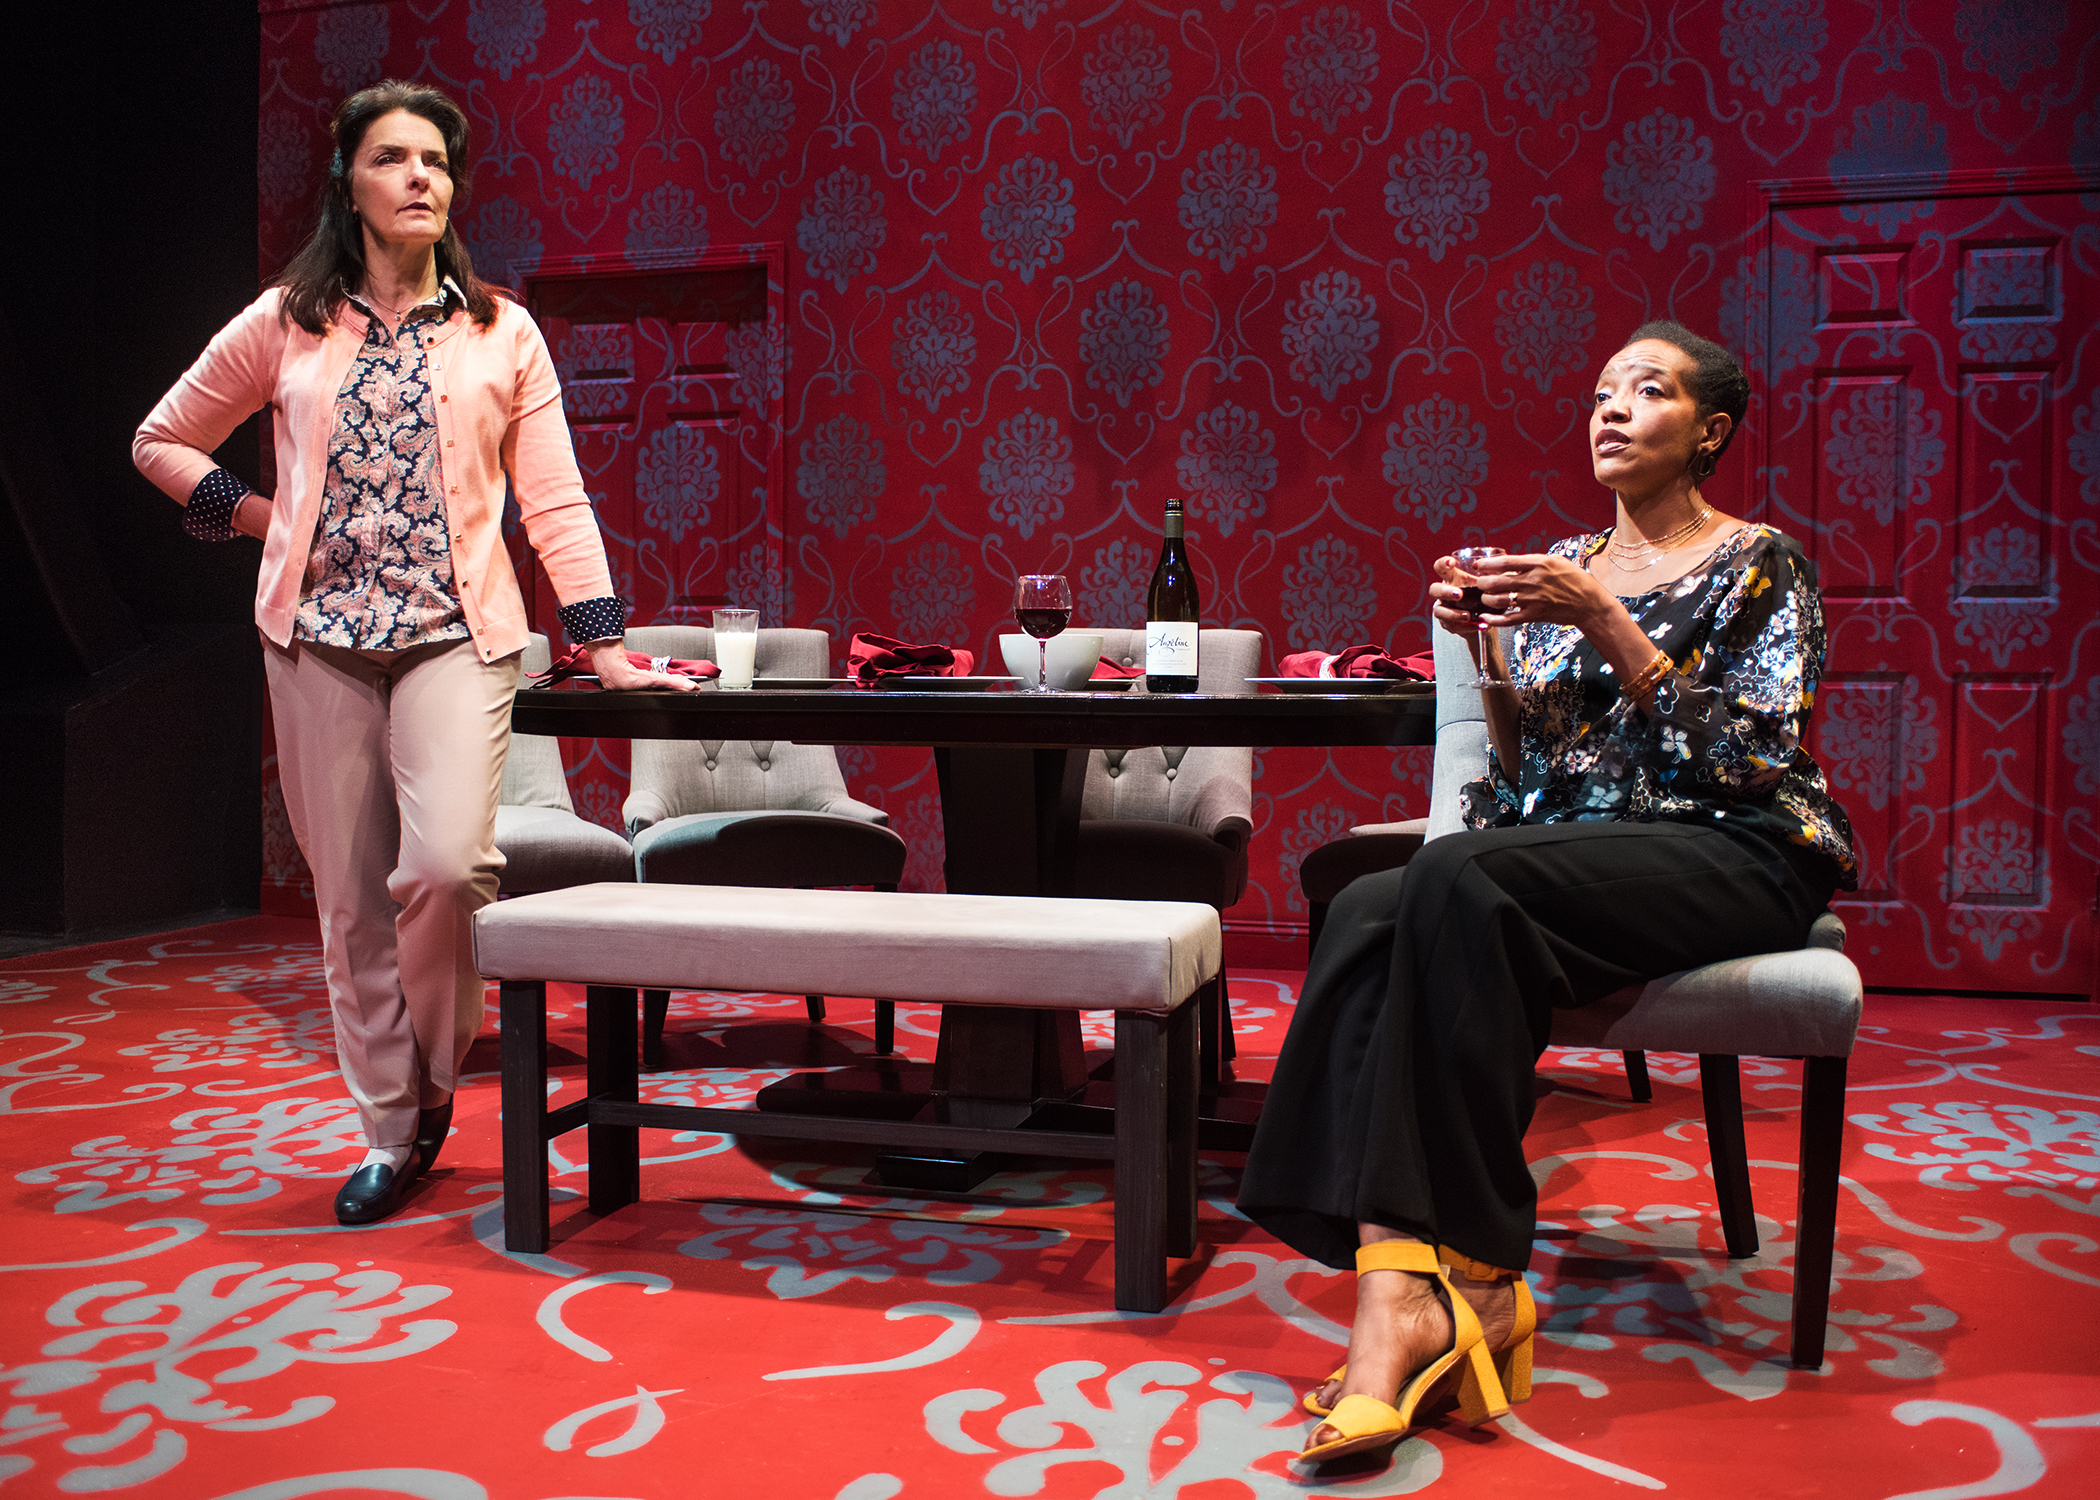 L to R: Tamara (Cheryl Smith) and Debora (Desiree) develop an unlikely bond.